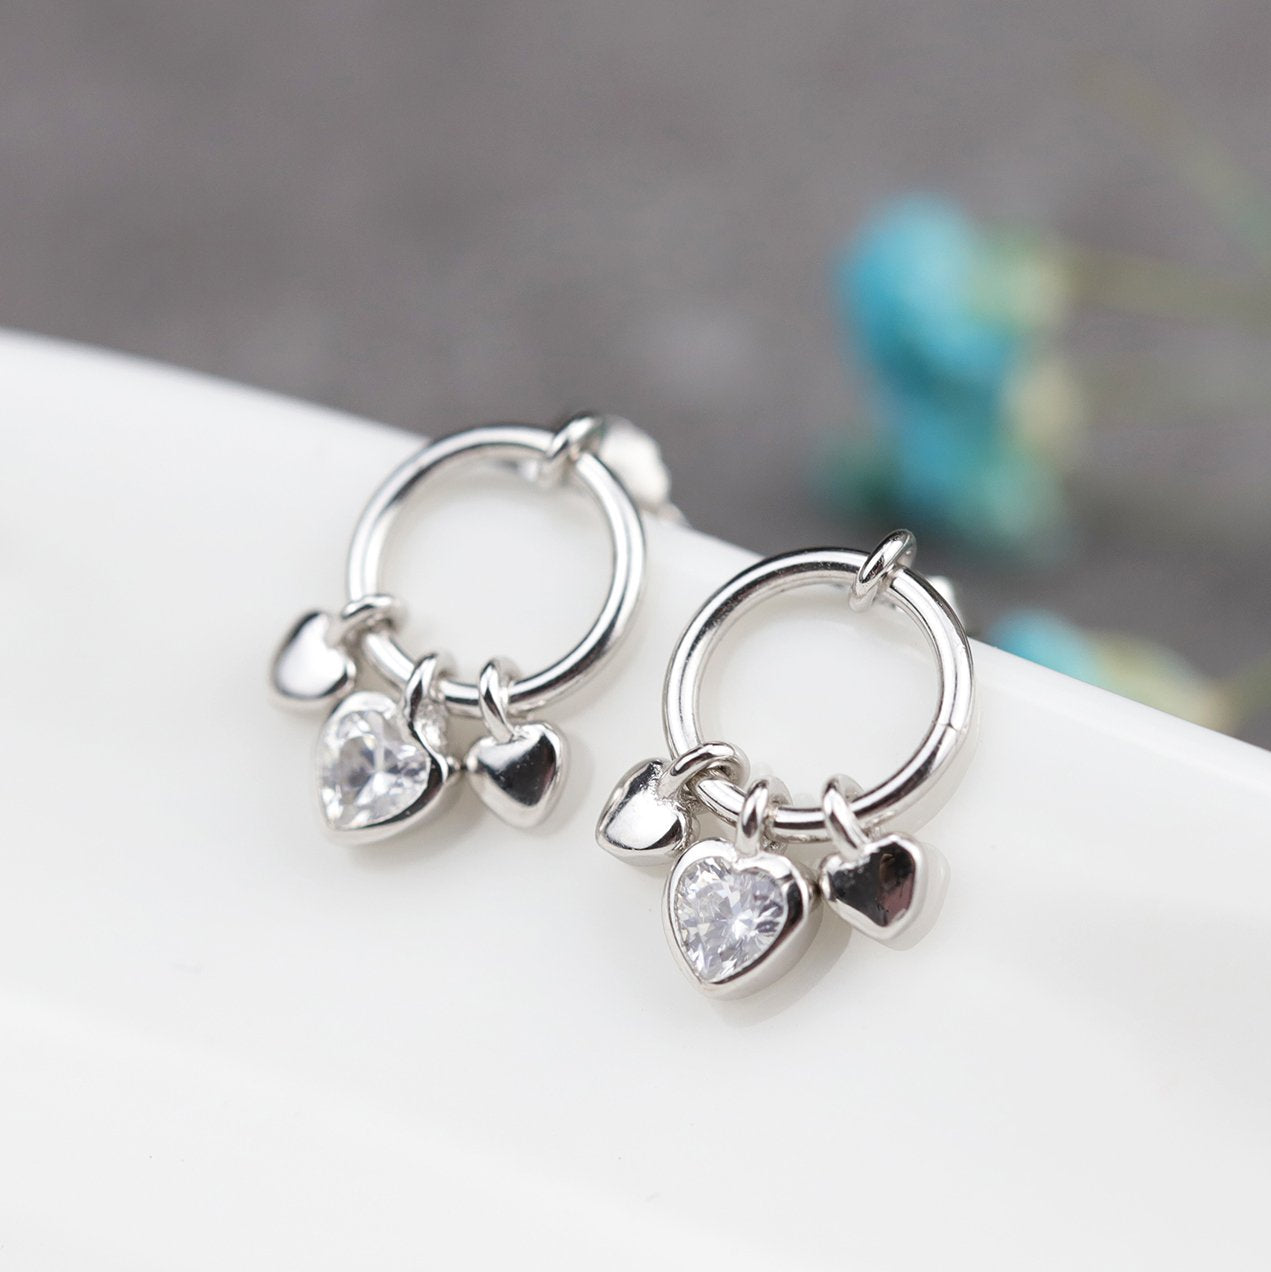 Chic Heart Silver Stud Earrings